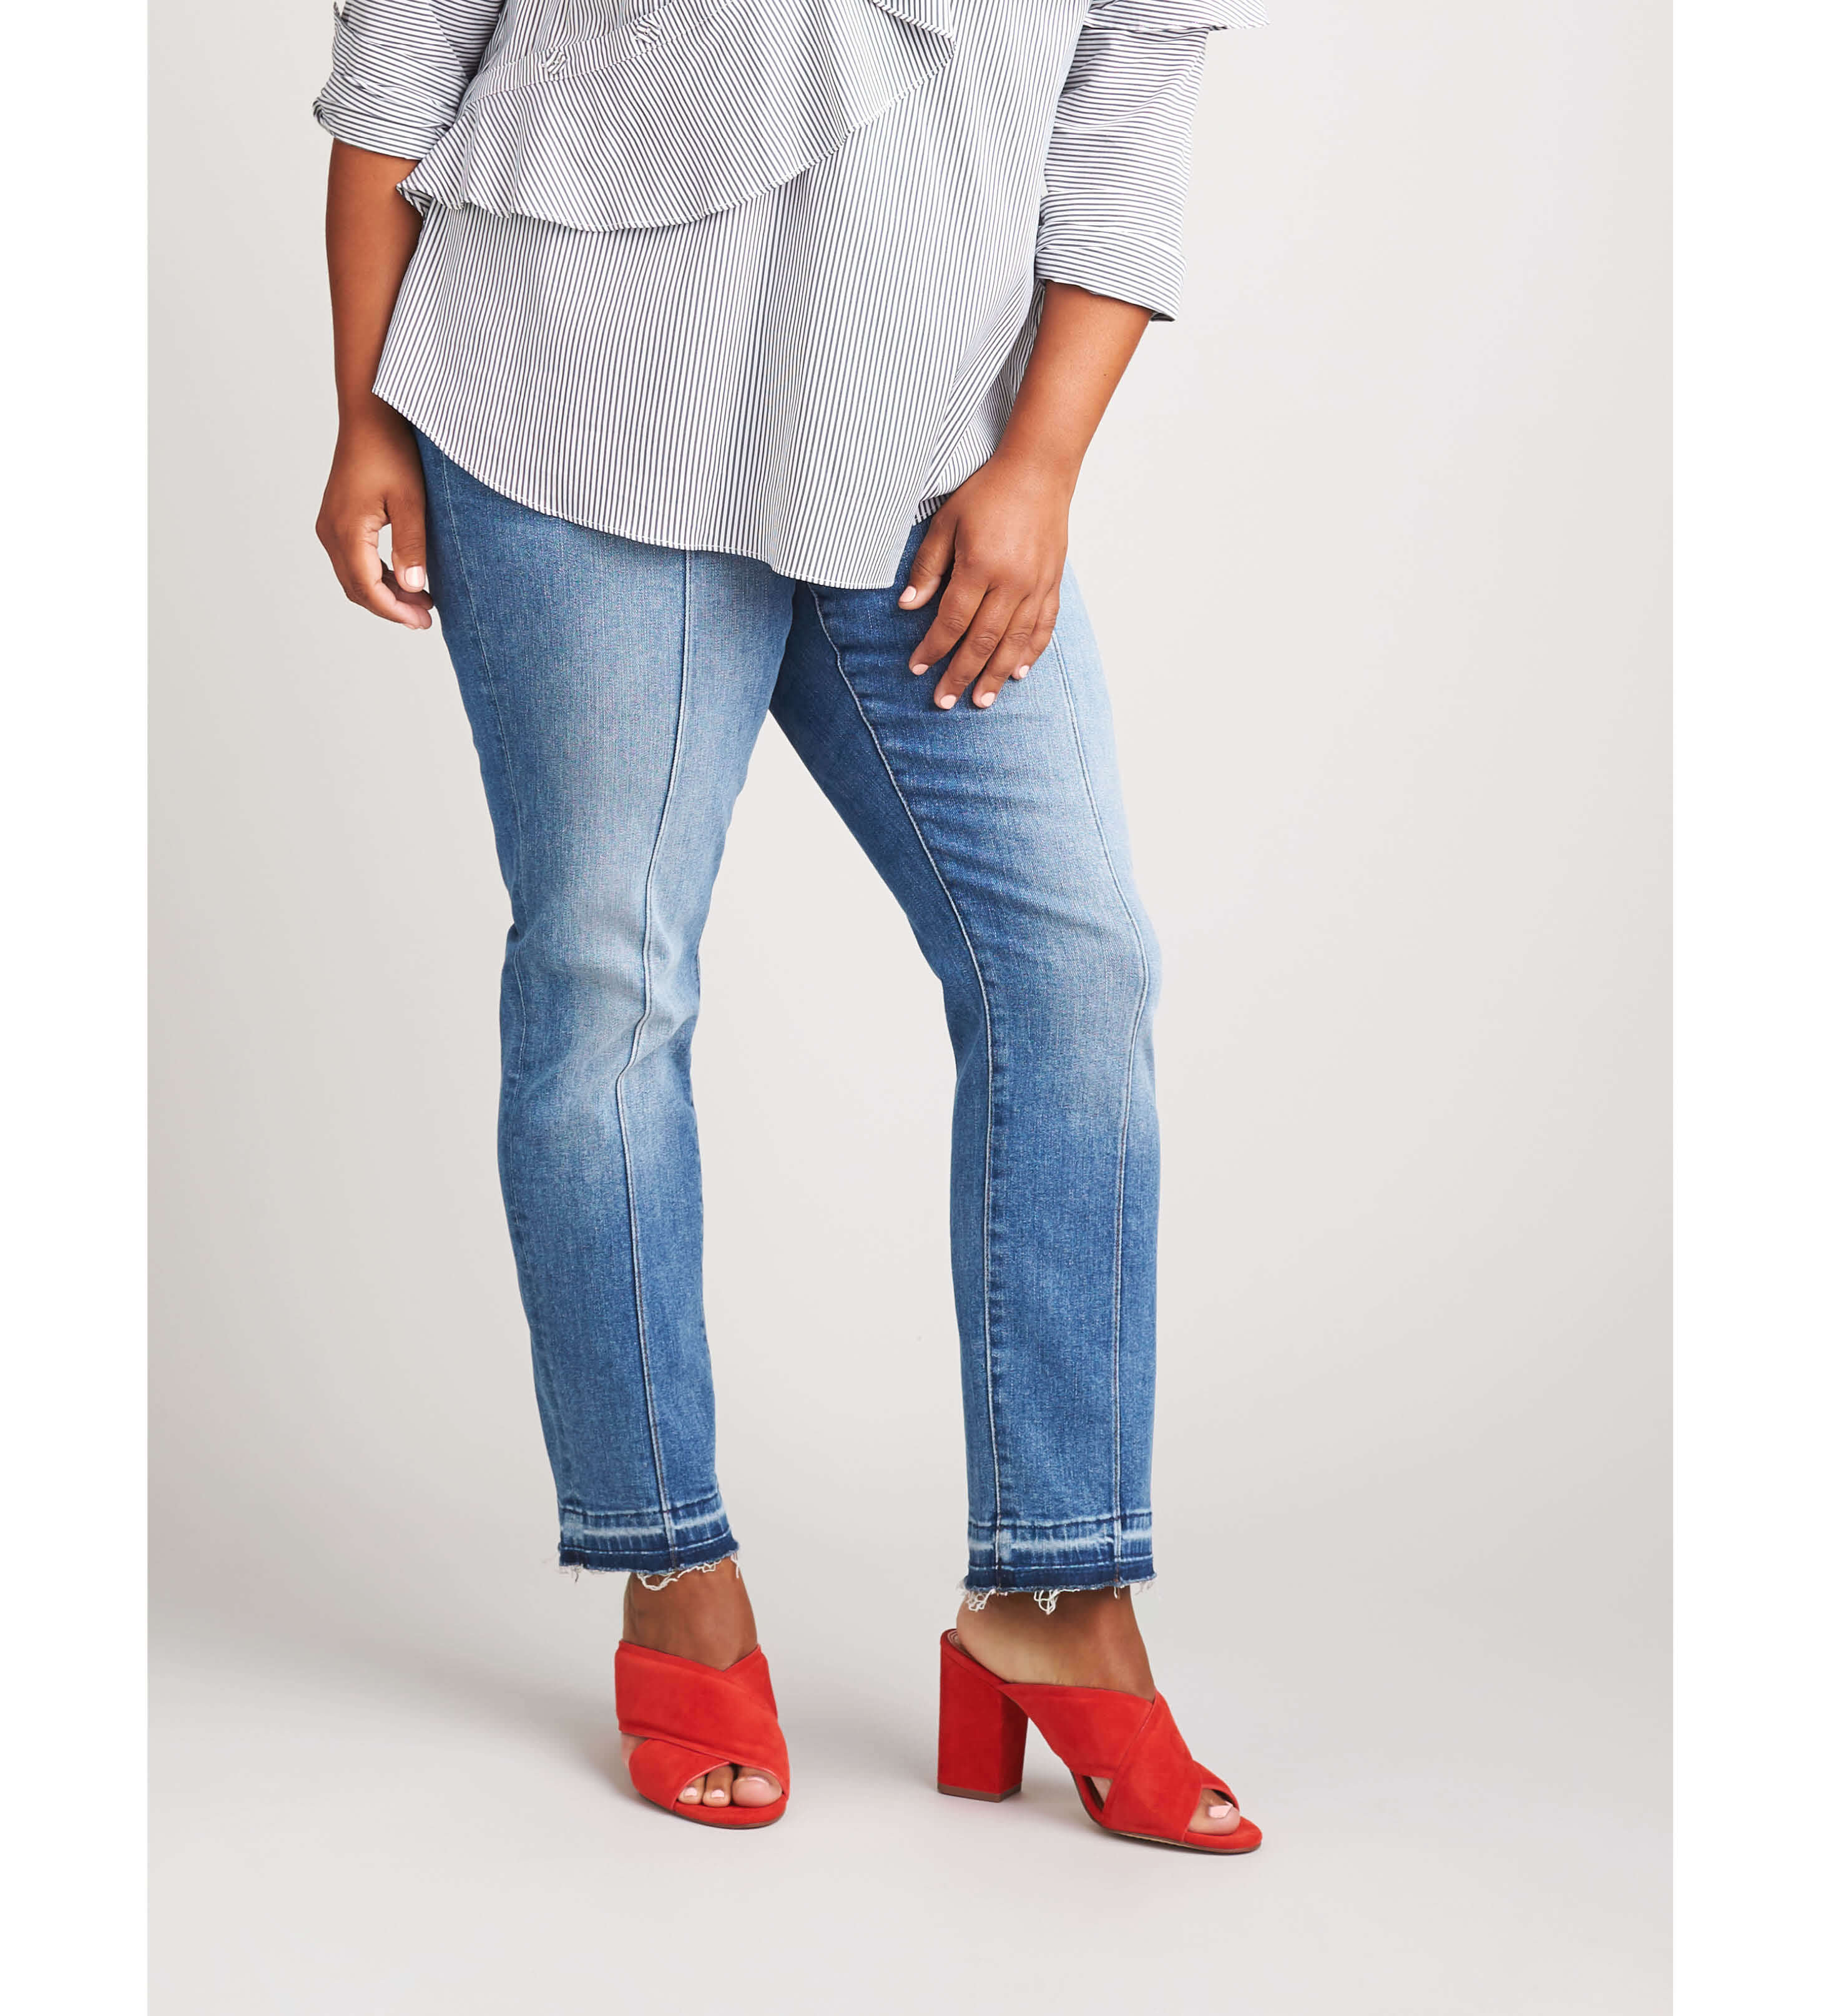 best jeans for hourglass, jeans for hourglass